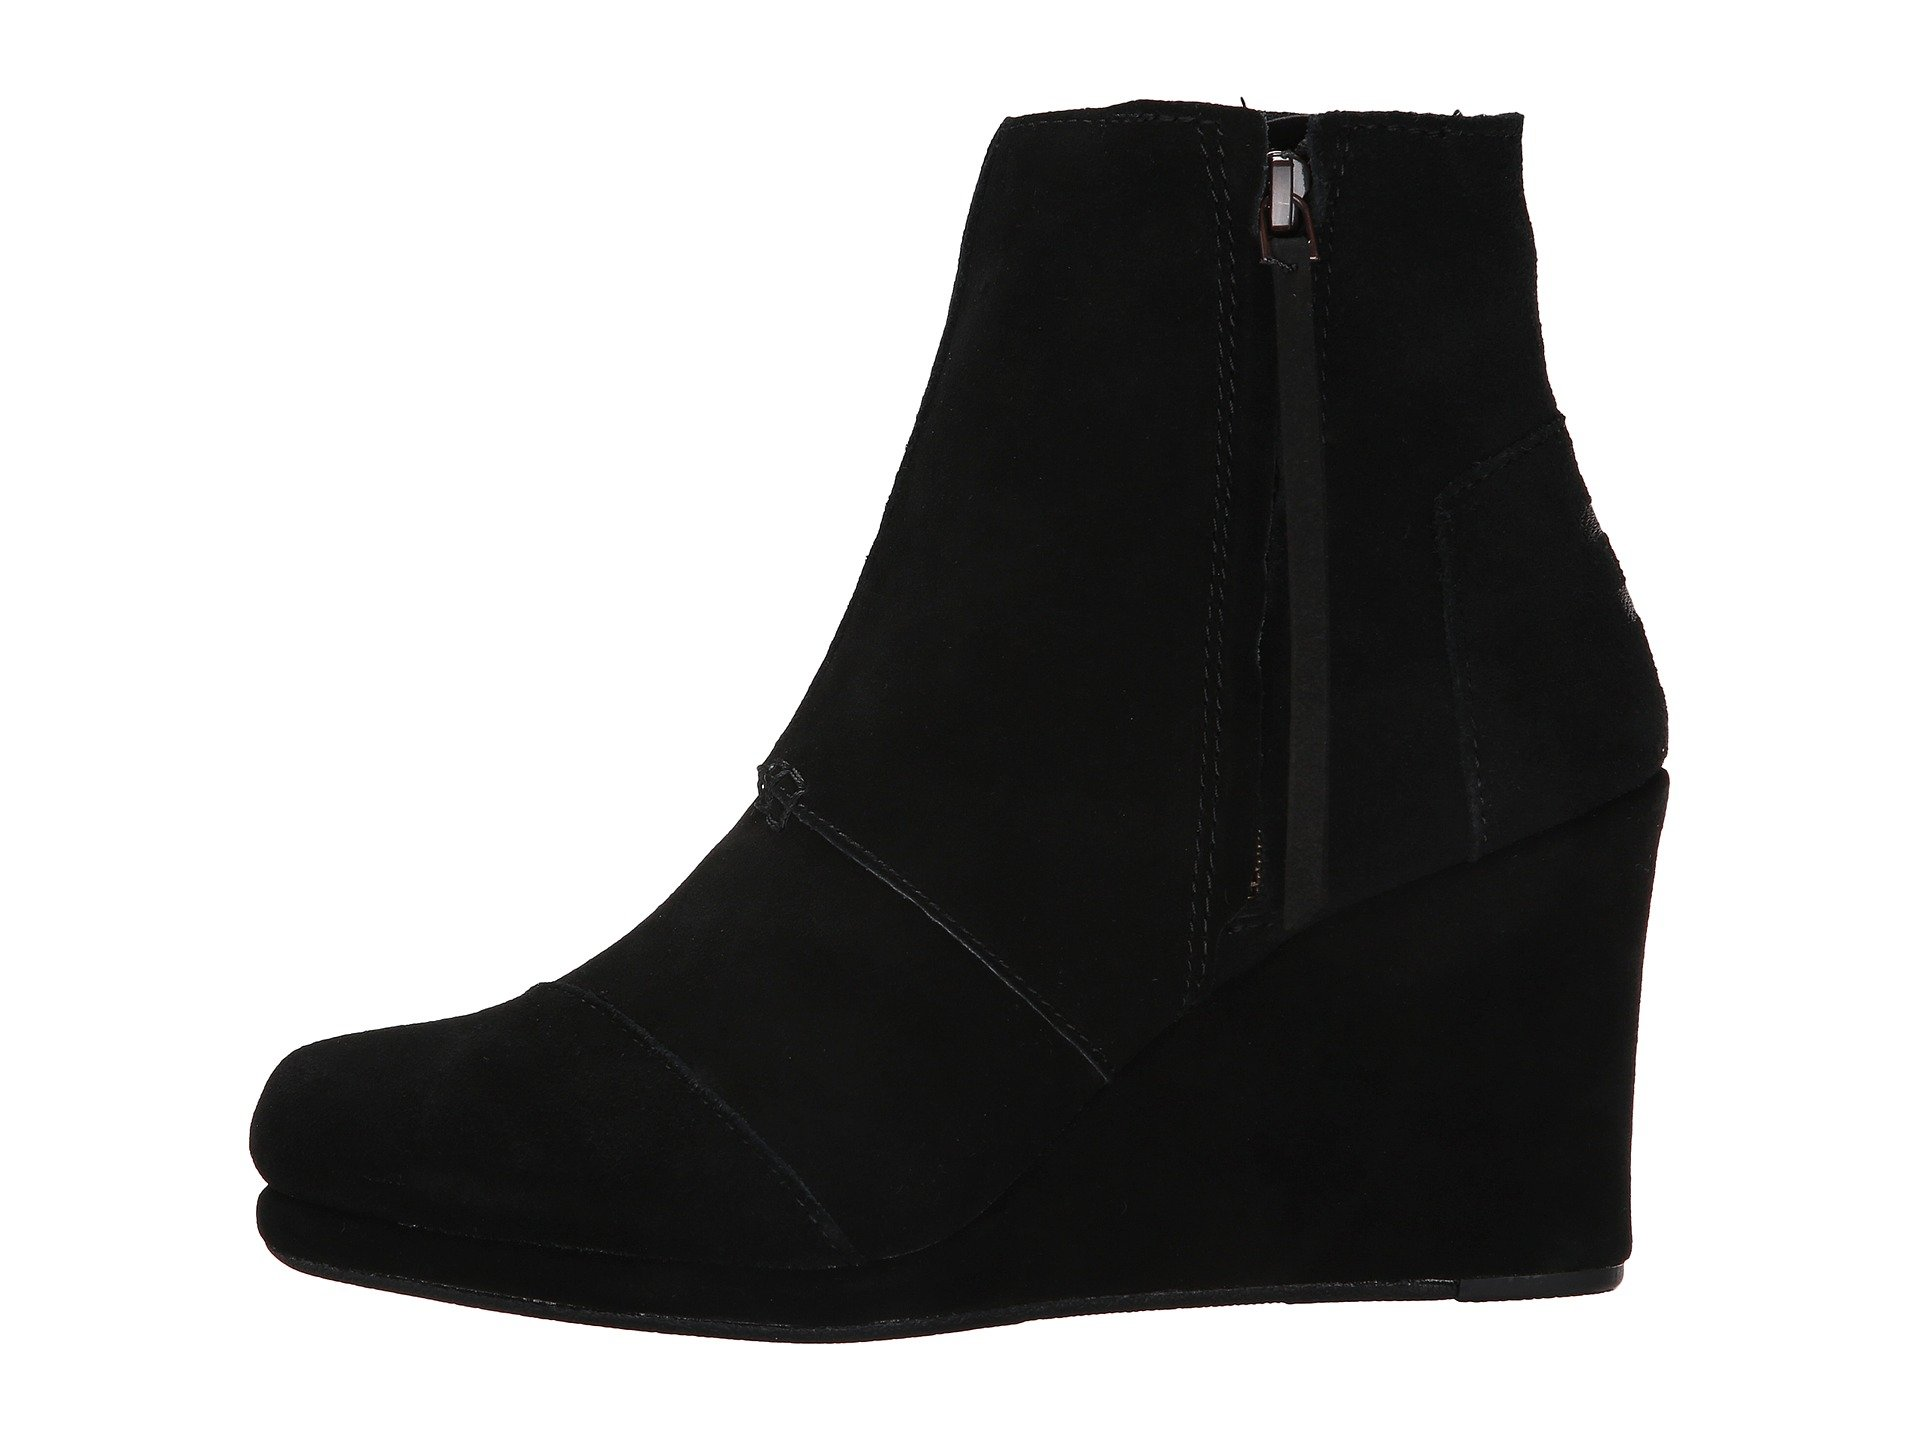 Toms Black Desert Wedge High Shoes